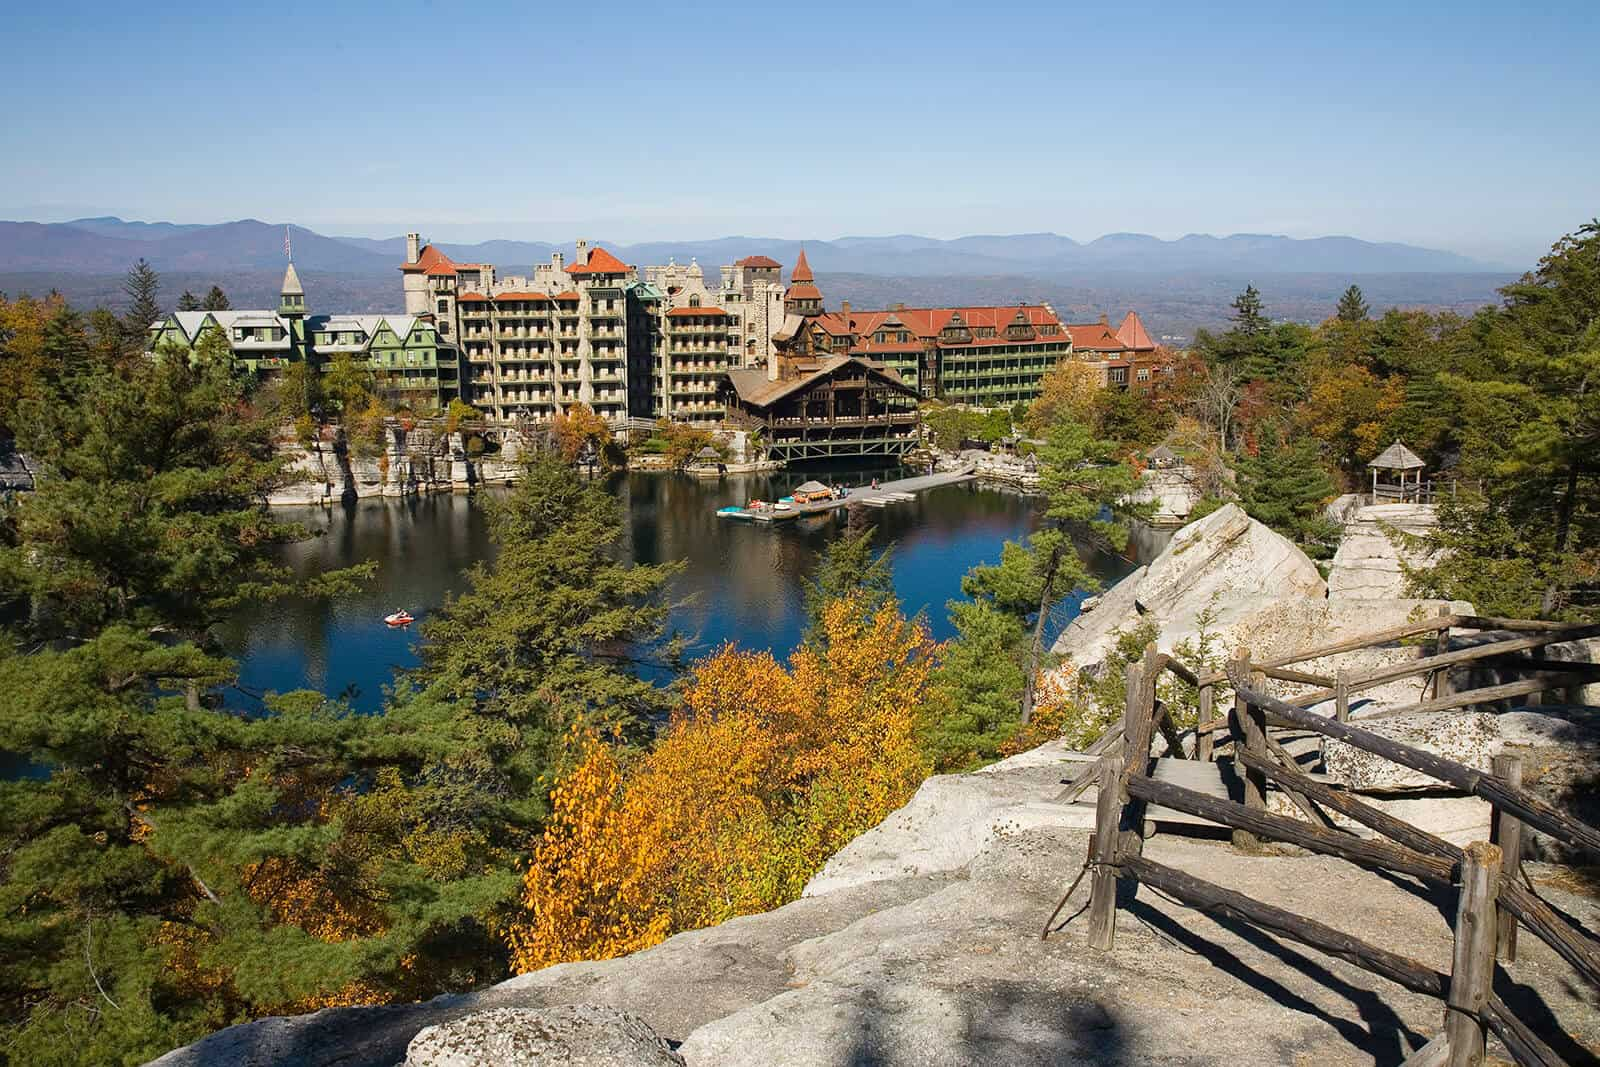 Landscape of Mohonk